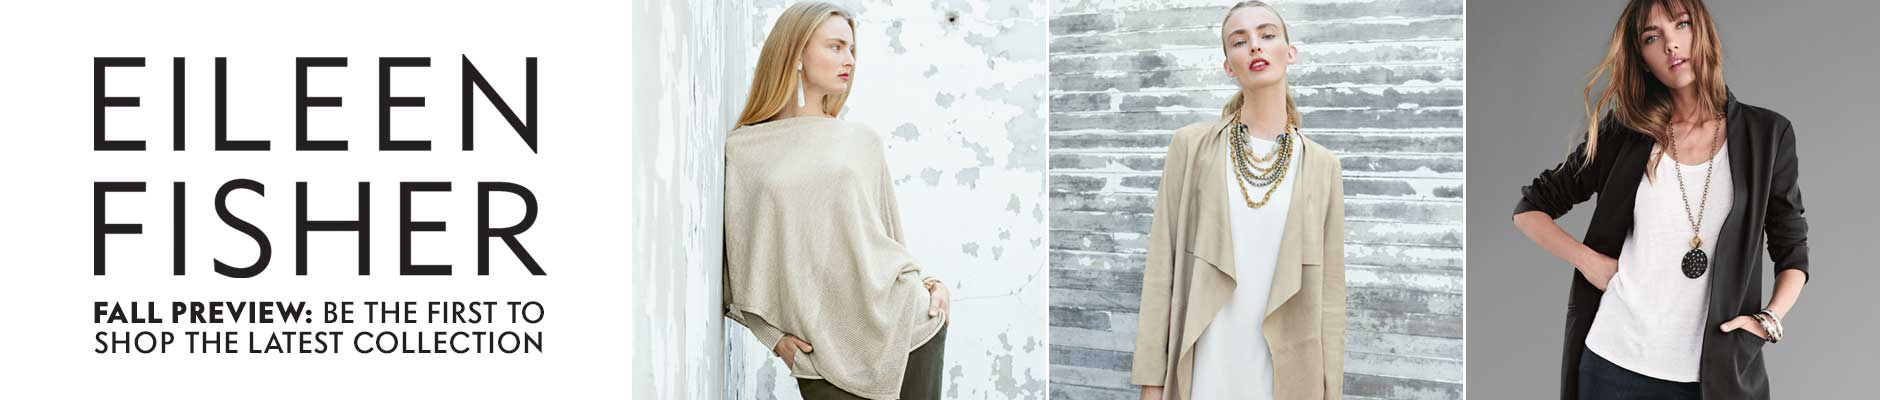 Eileen Fisher Preview